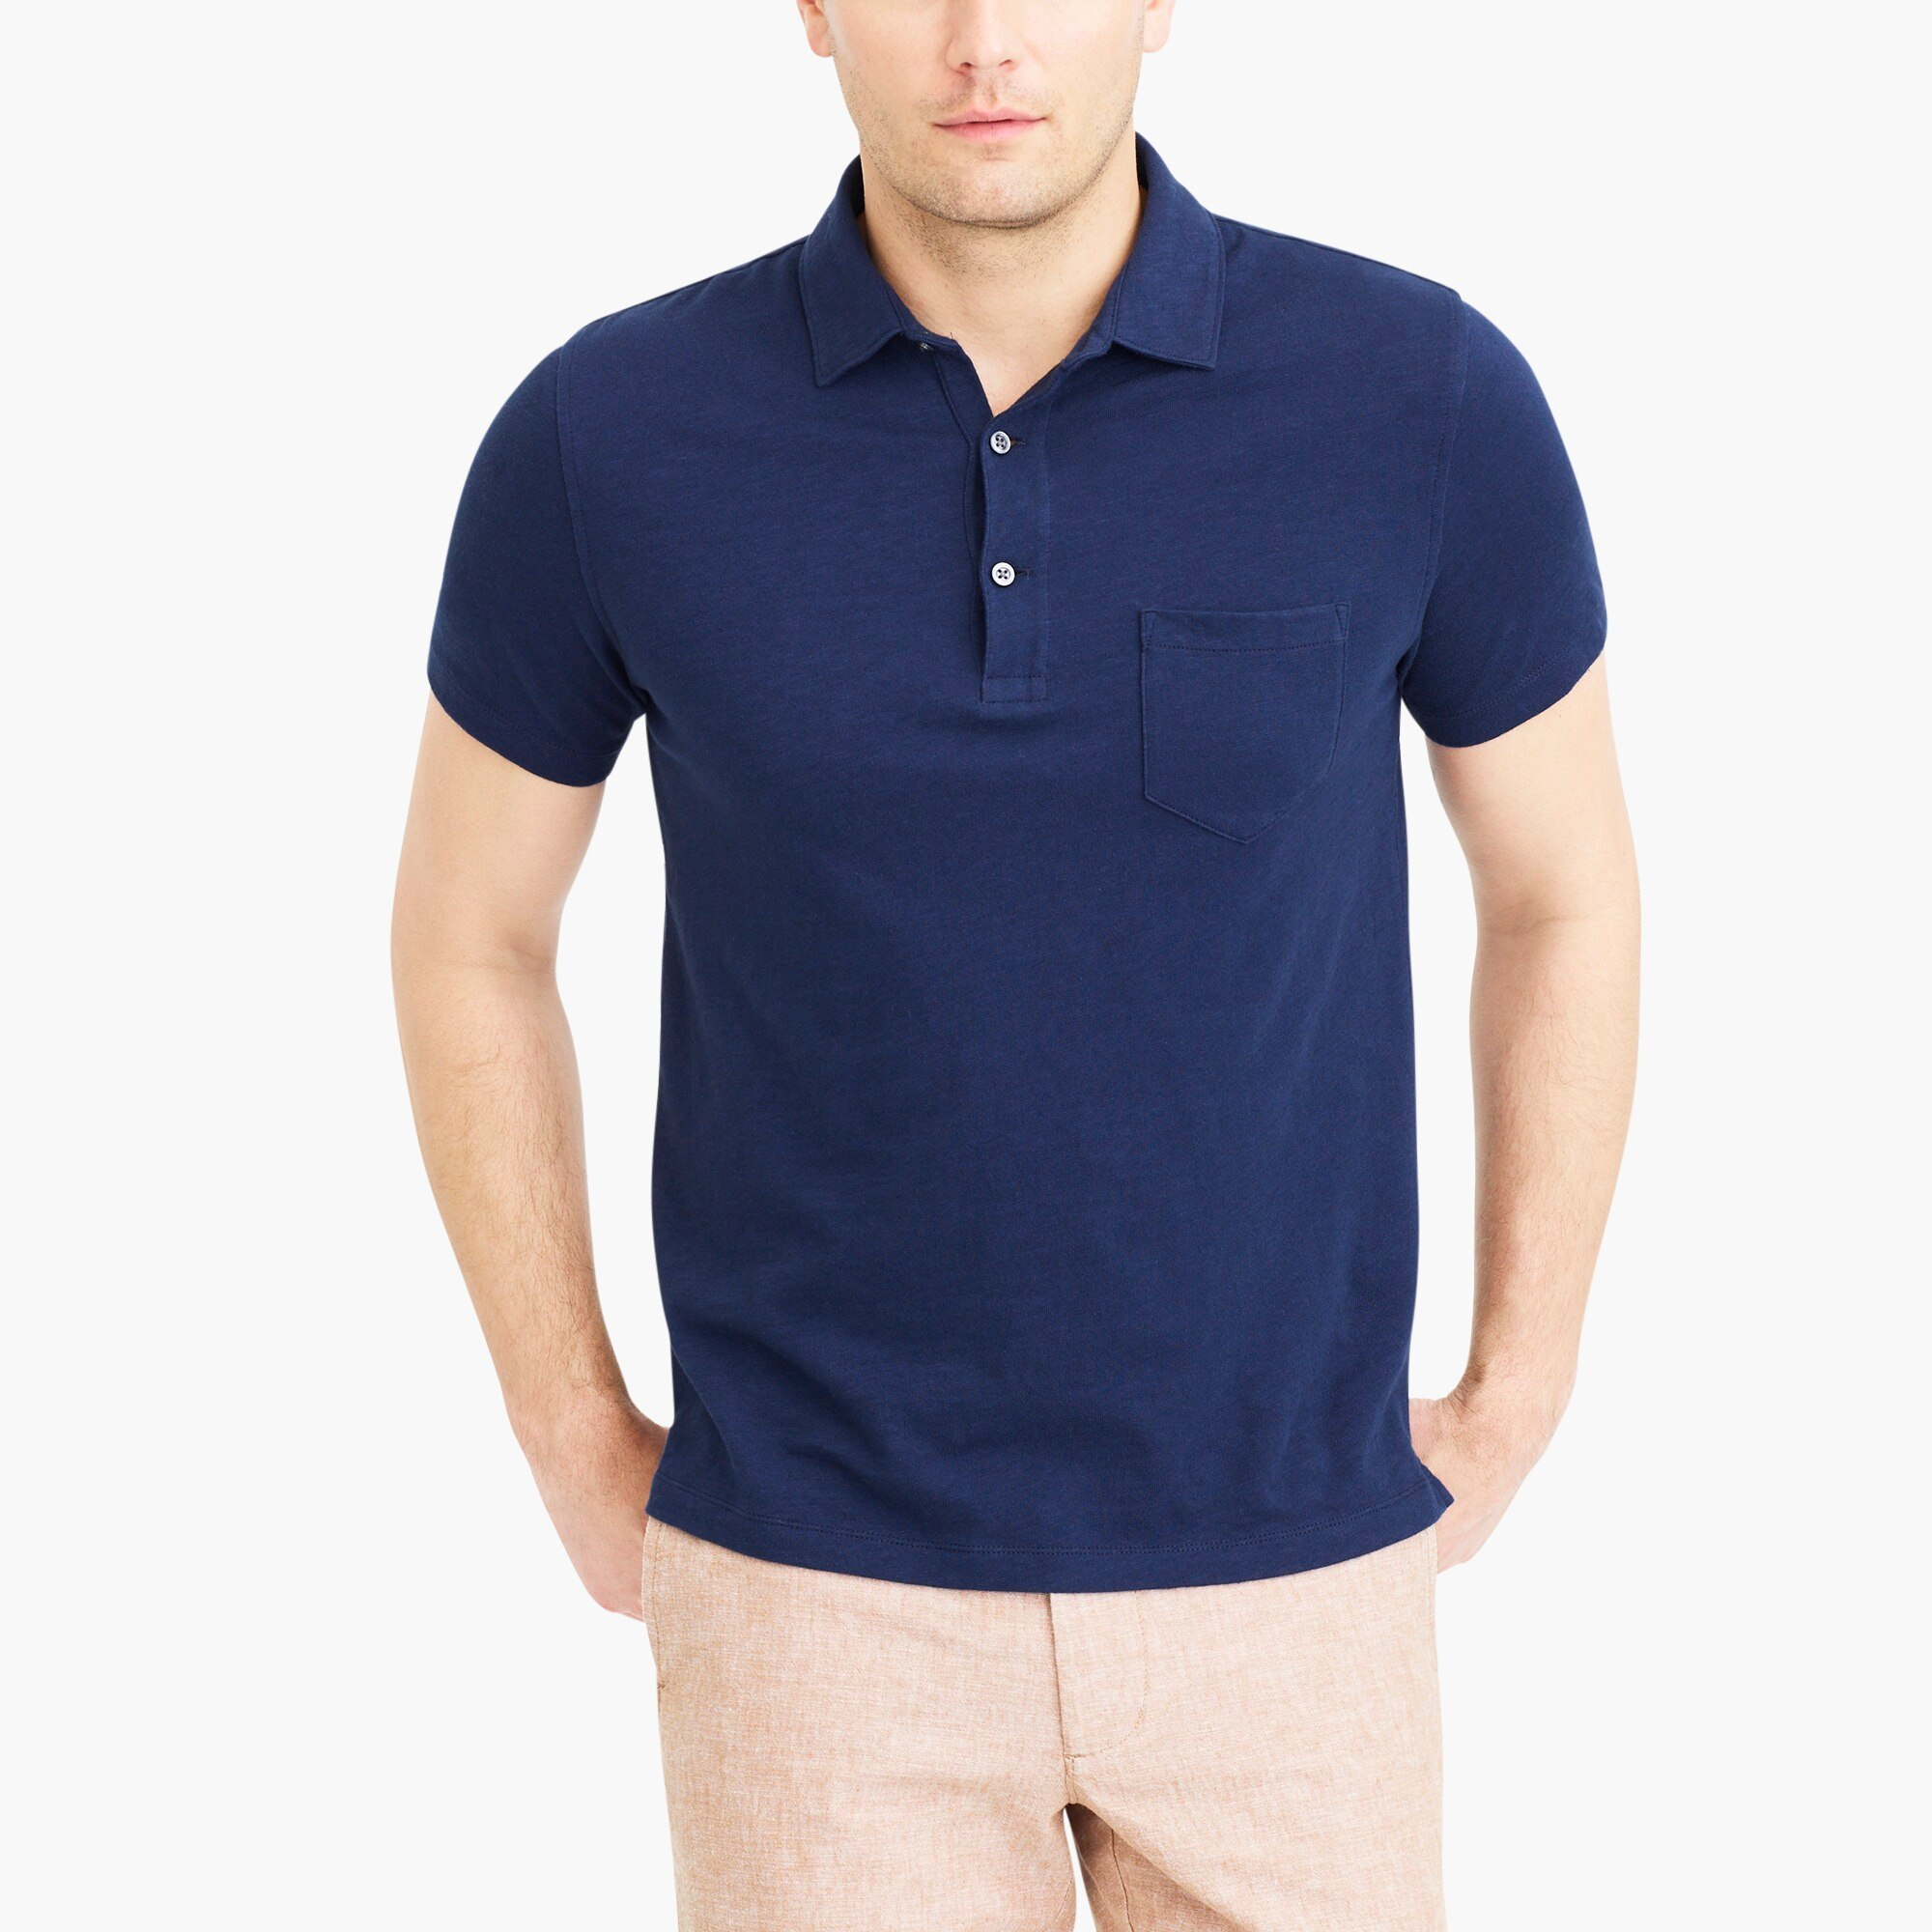 short-sleeve polo shirt in slub cotton : factorymen slub cotton polo